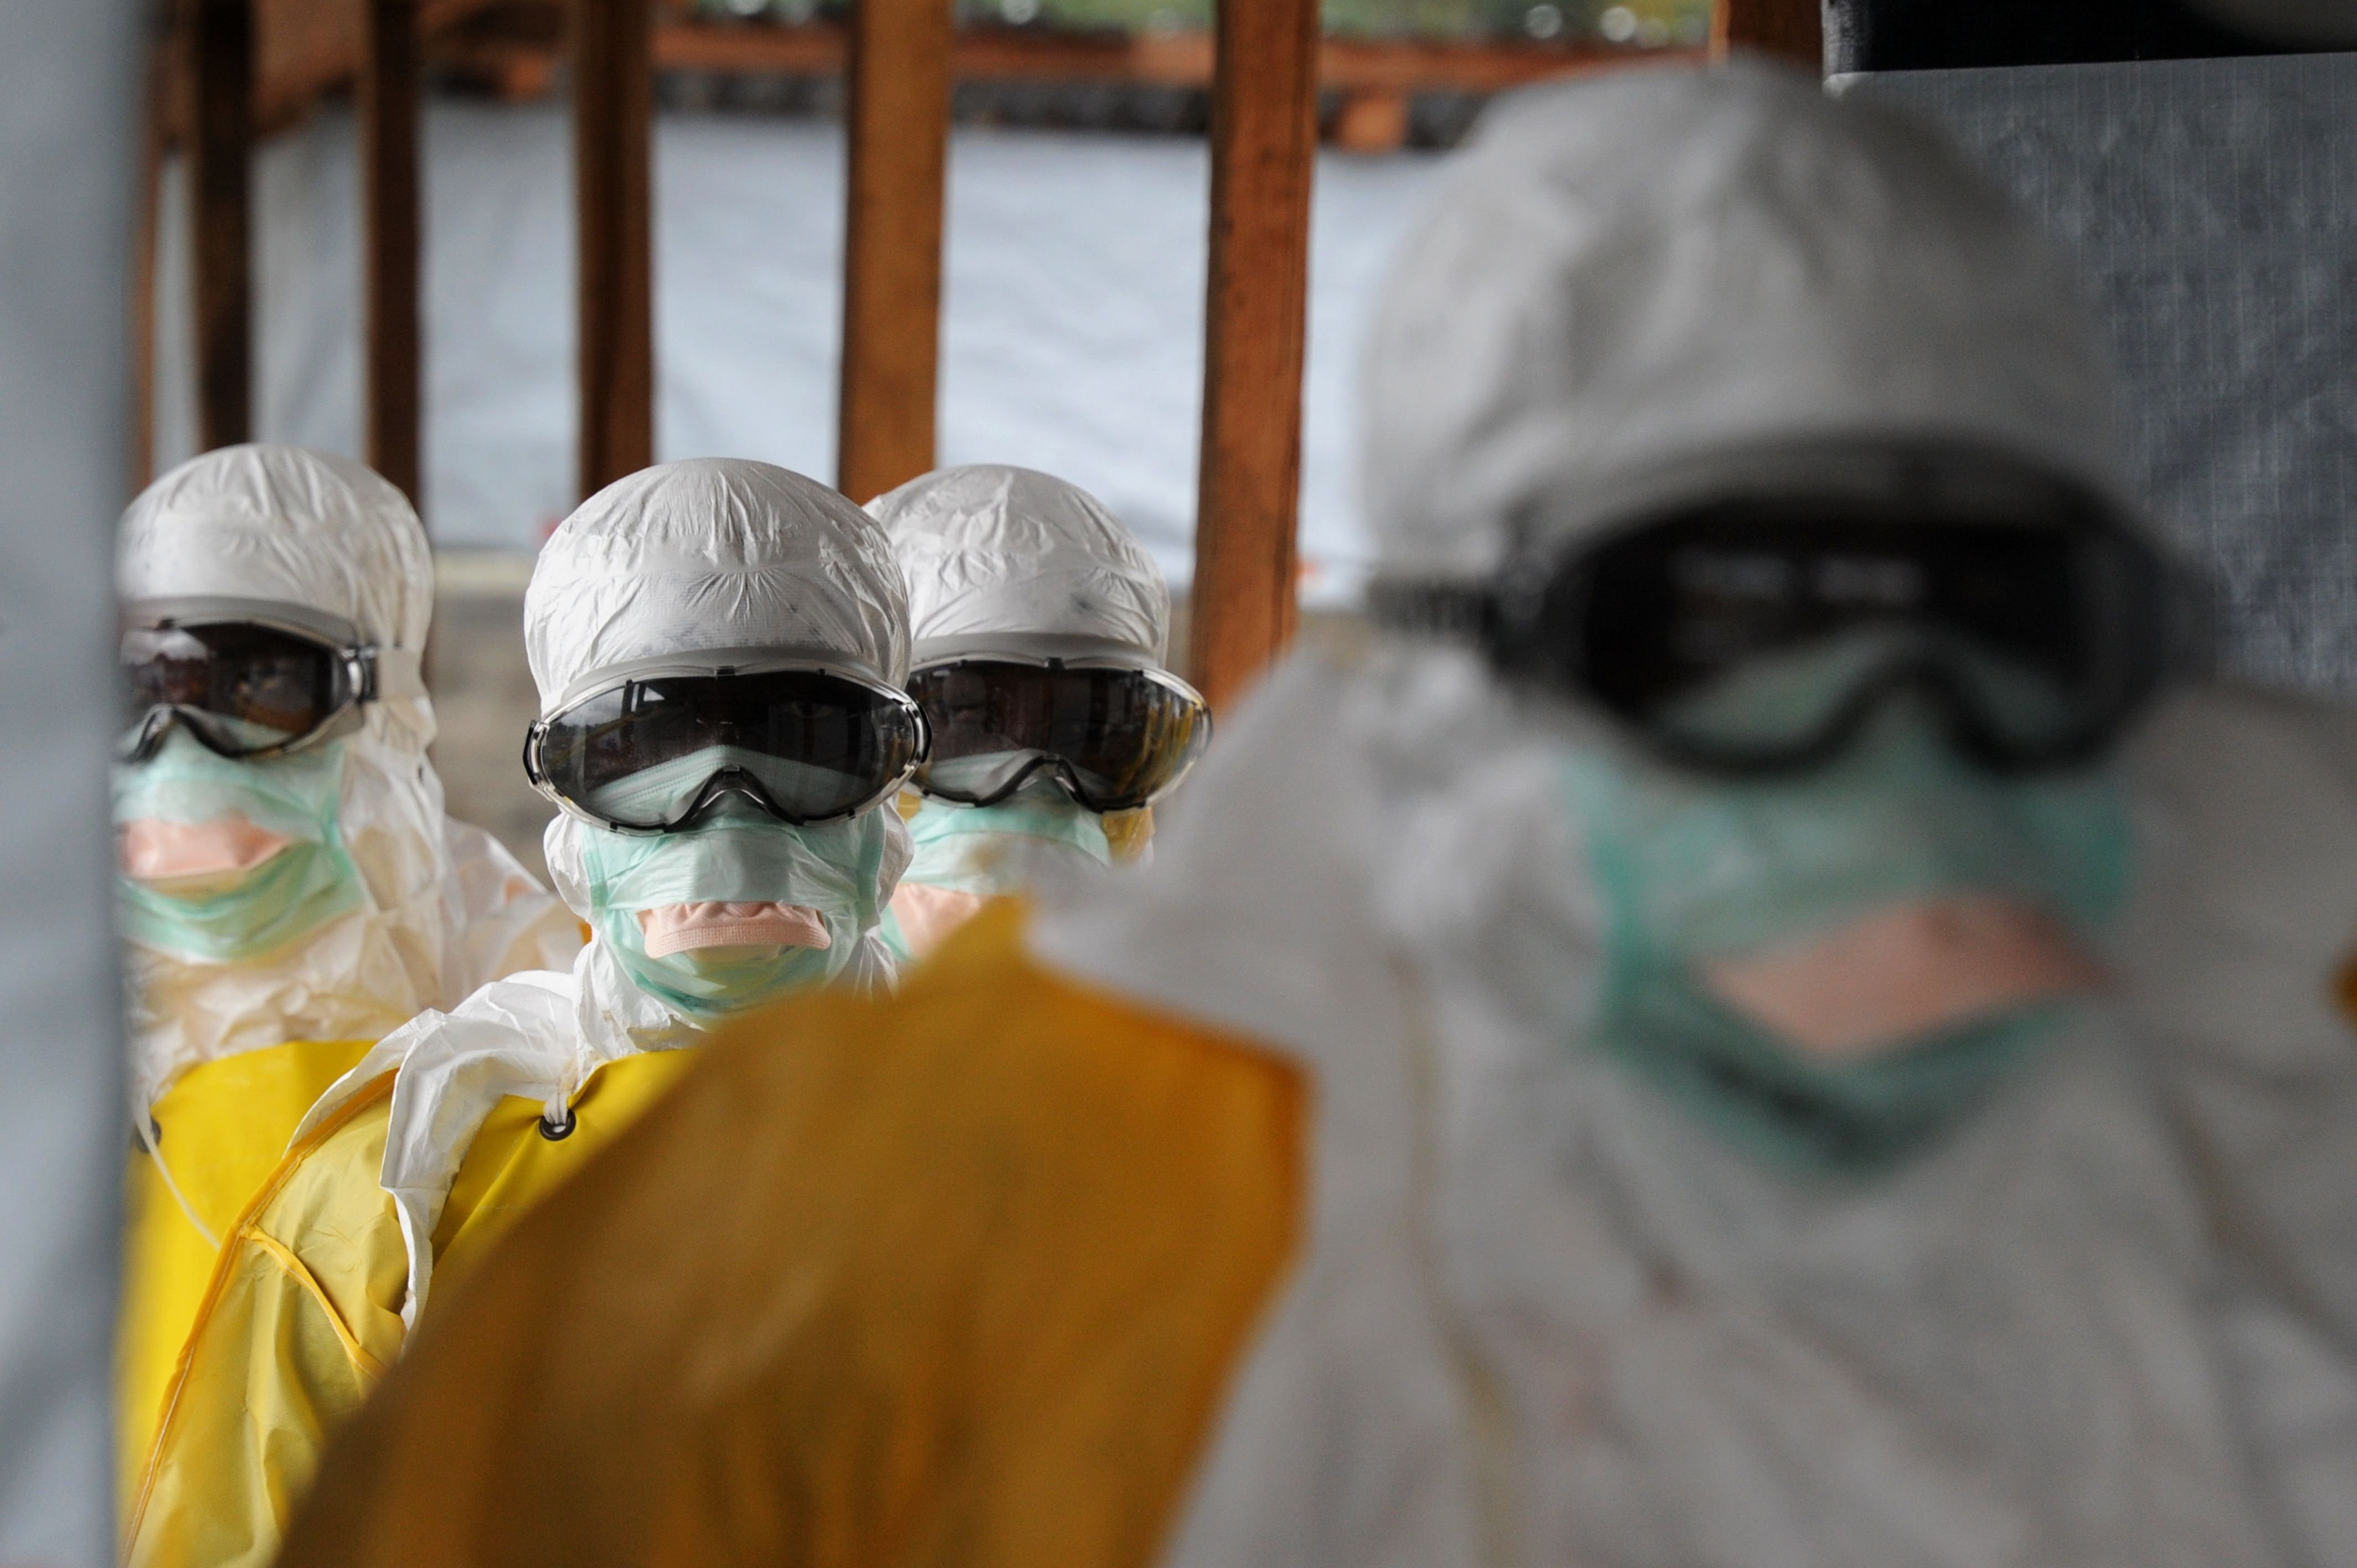 Health care workers, wearing protective suits, leave a high-risk area at the French NGO Medecins Sans Frontieres (Doctors without borders) Elwa hospital in Monrovia, Liberia on Aug. 30, 2014.